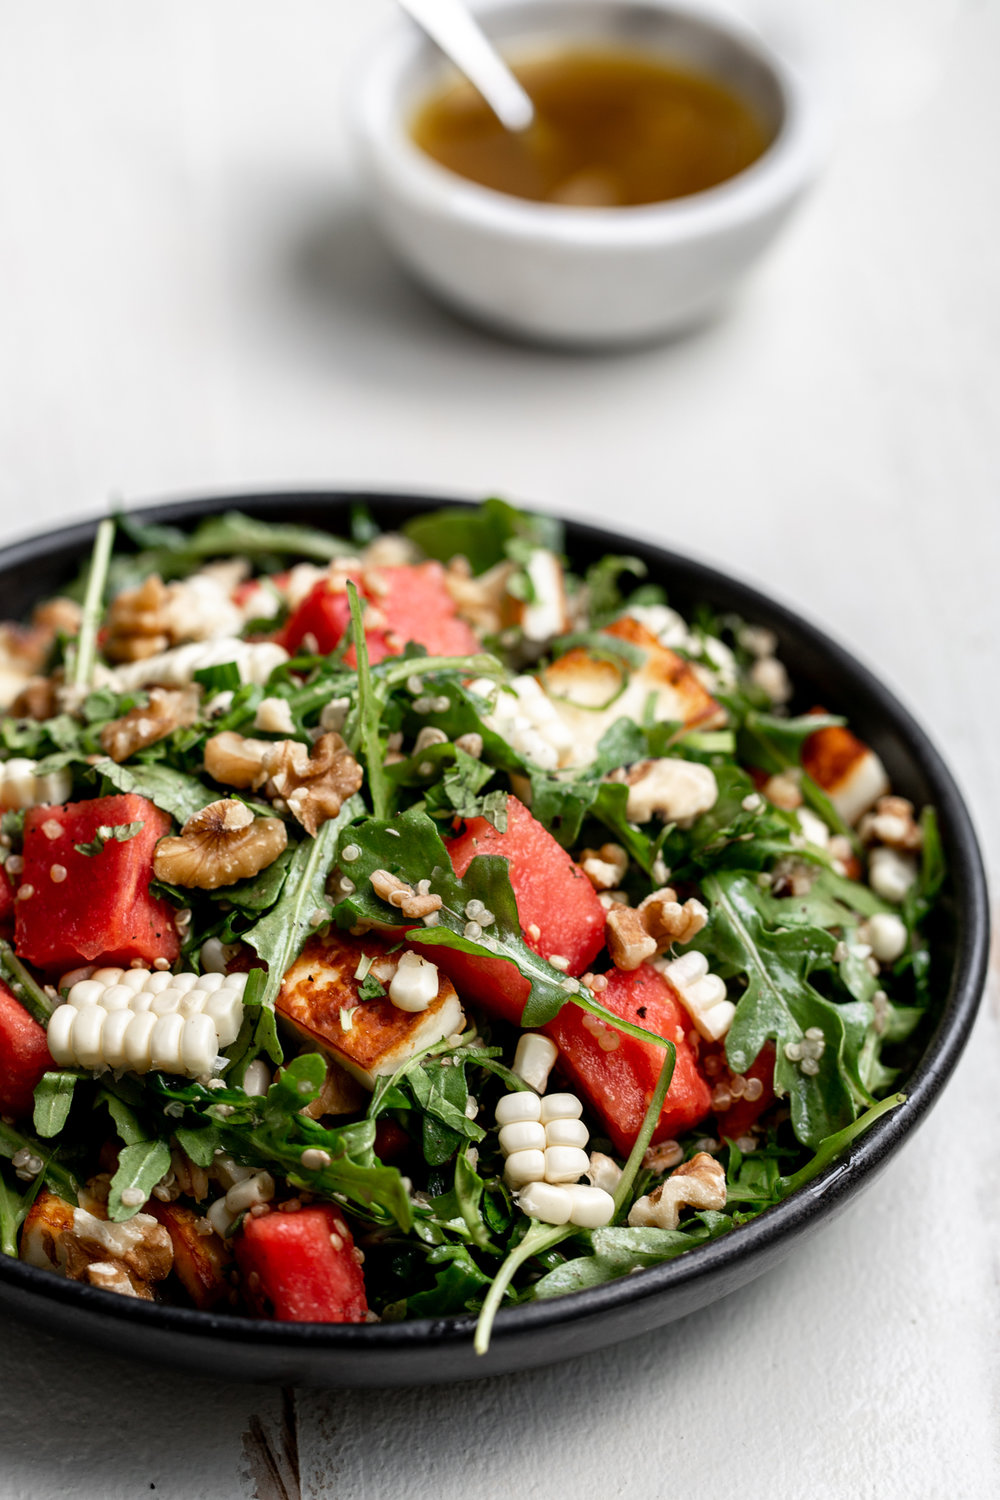 Watermelon with grains and grilled halloumi cheese-24.jpg